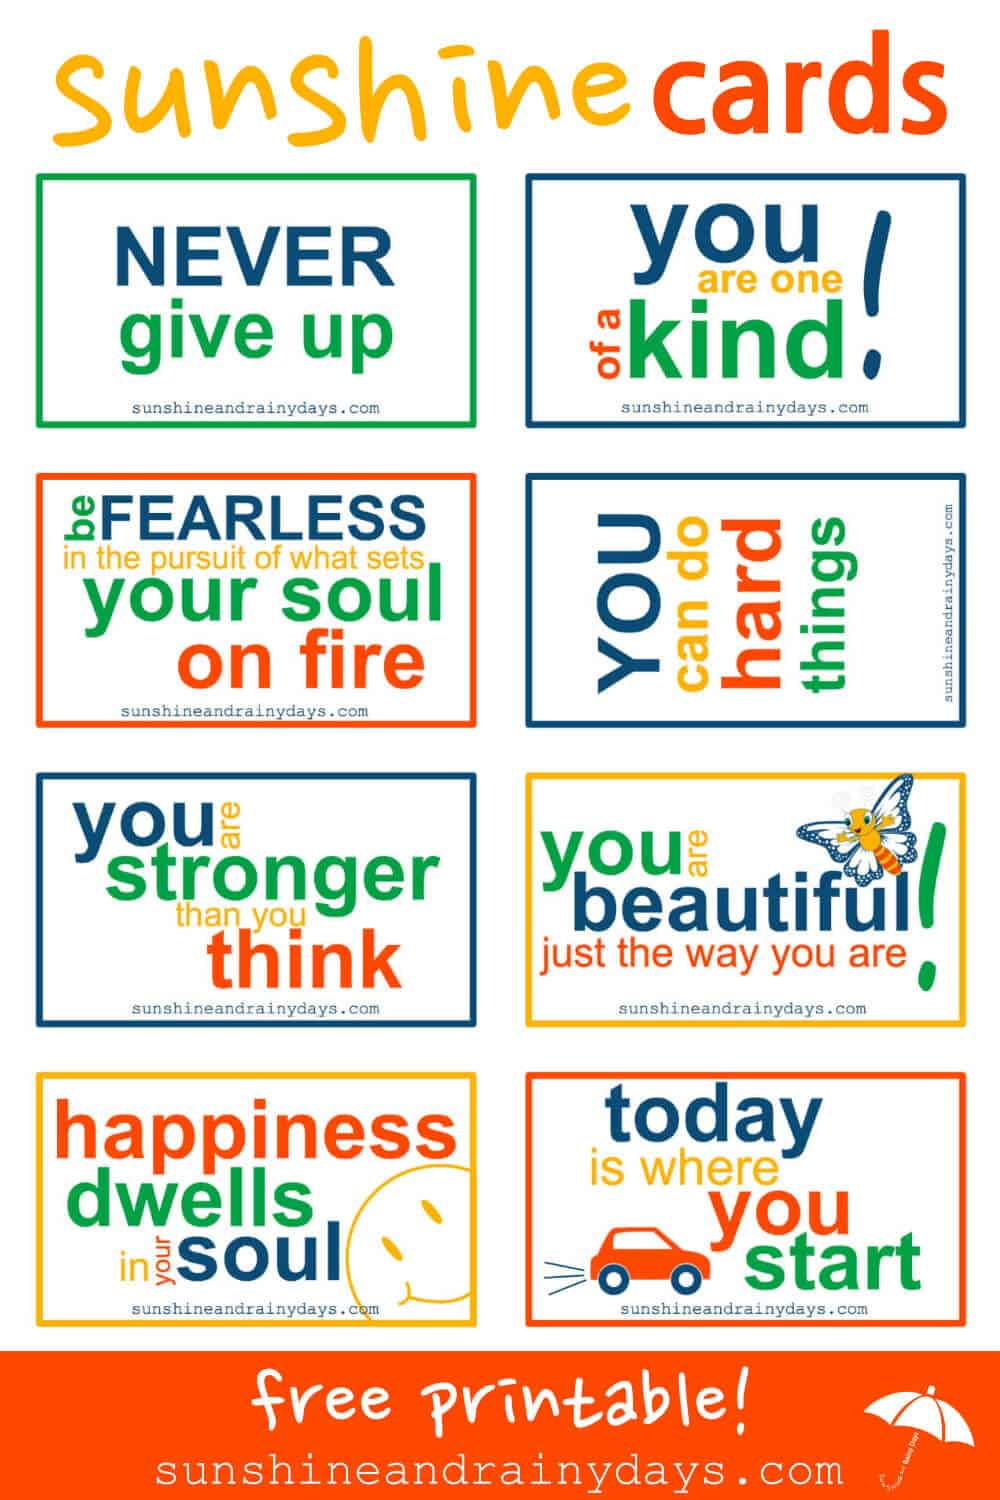 Print your own set of our FREE Printable Sunshine Cards and get ready to pay it forward in style when an opportunity presents itself!